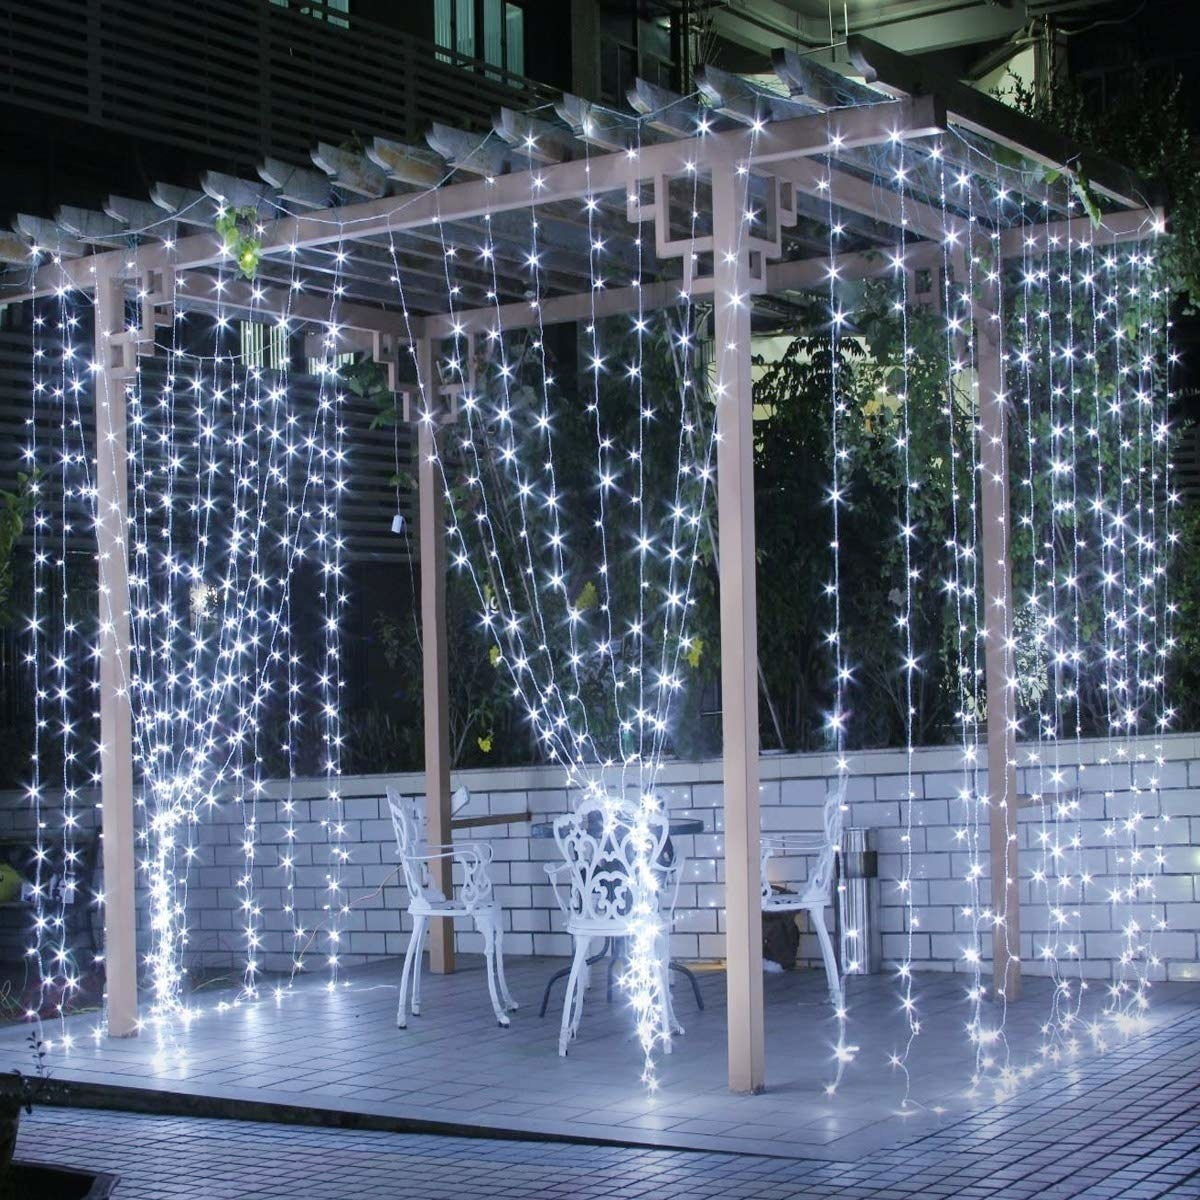 The light curtain being used to artistically decorate a gazebo.